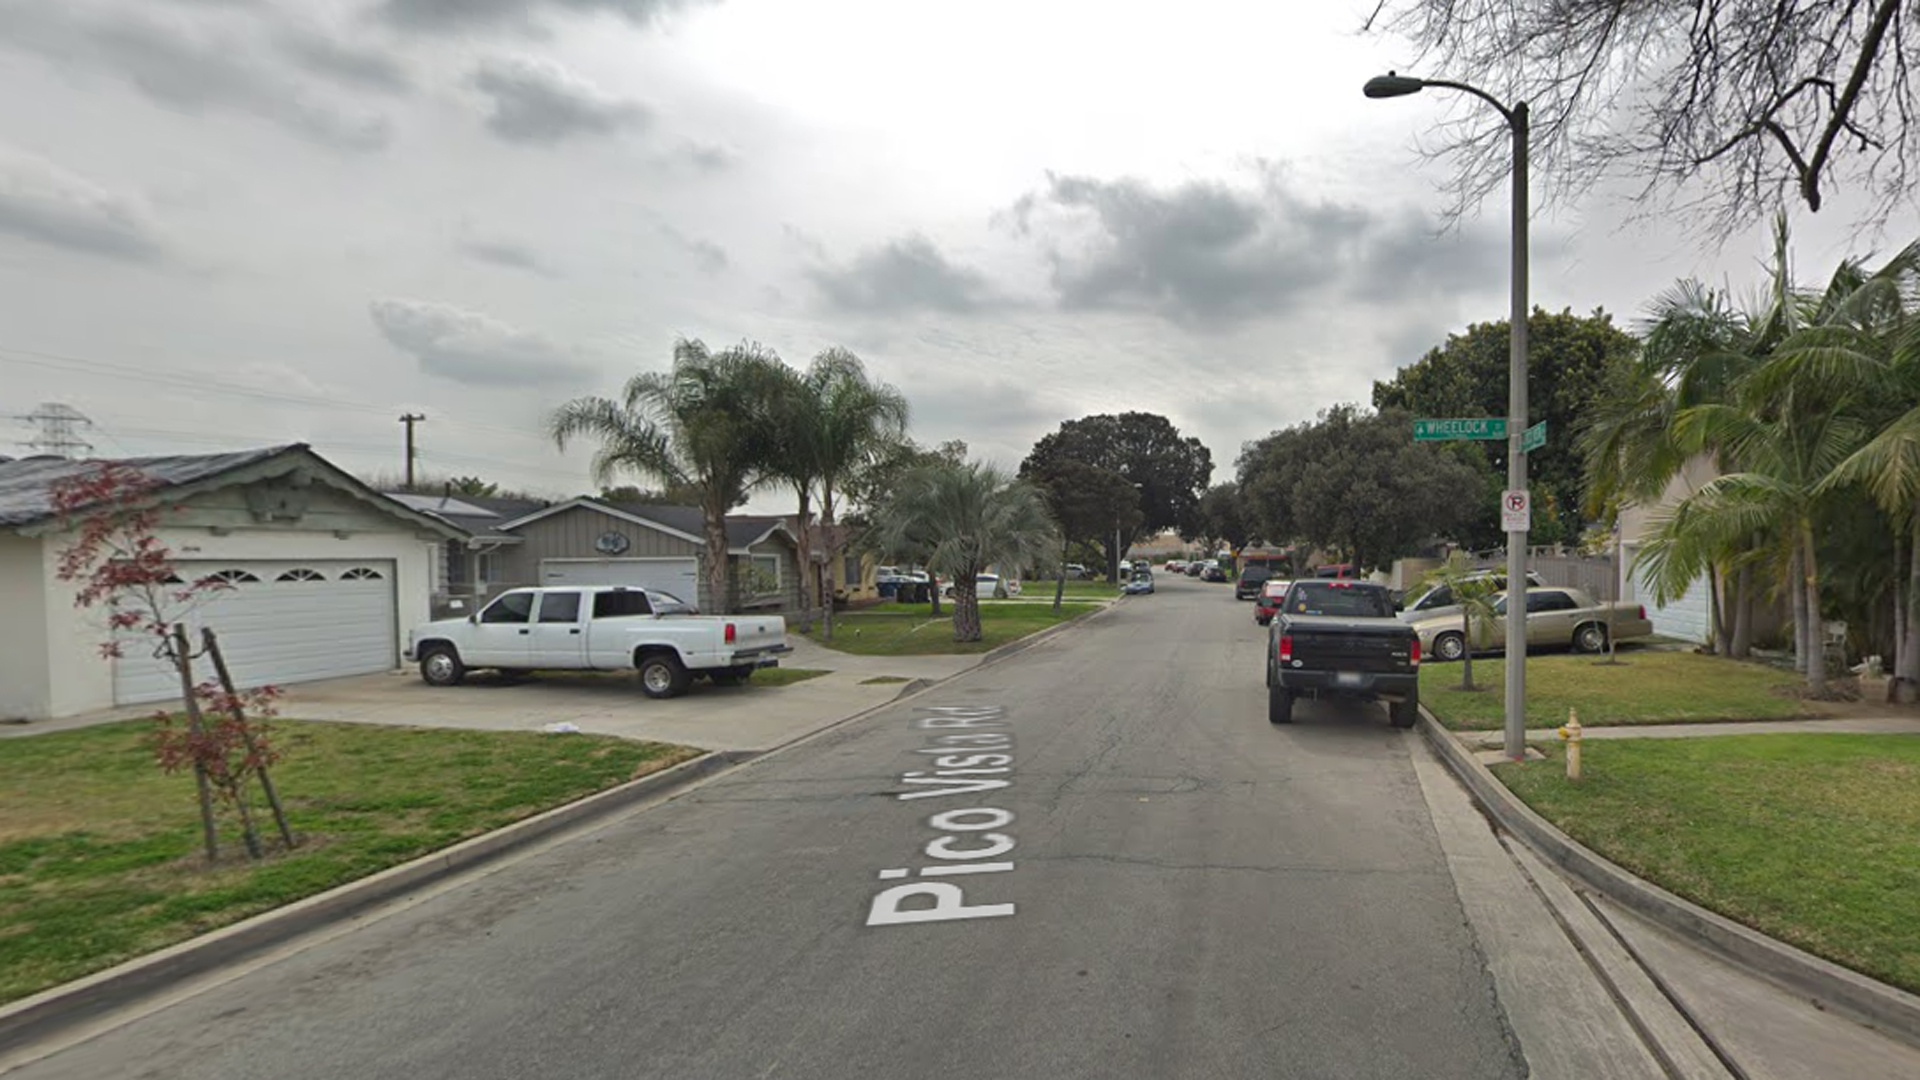 The 7600 block of Pico Vista Road in Pico Rivera, as viewed in a Google Street View image.